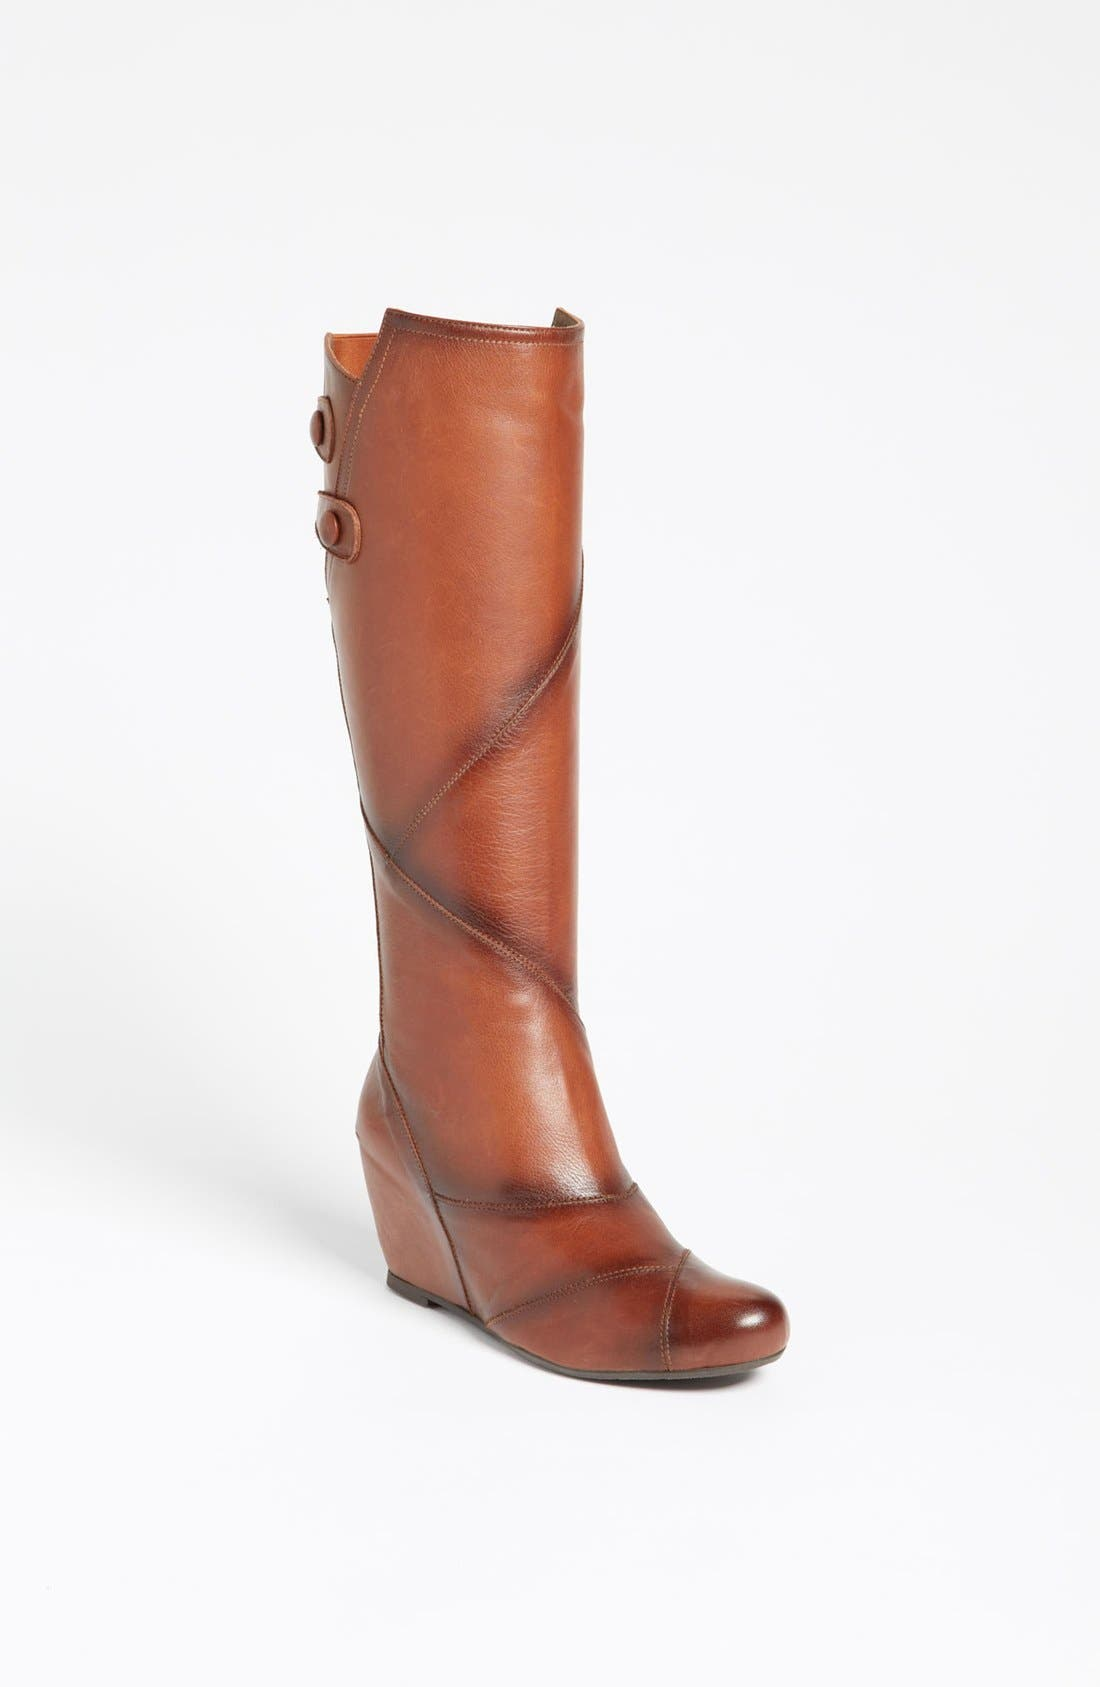 Alternate Image 1 Selected - Miz Mooz 'West' Boot